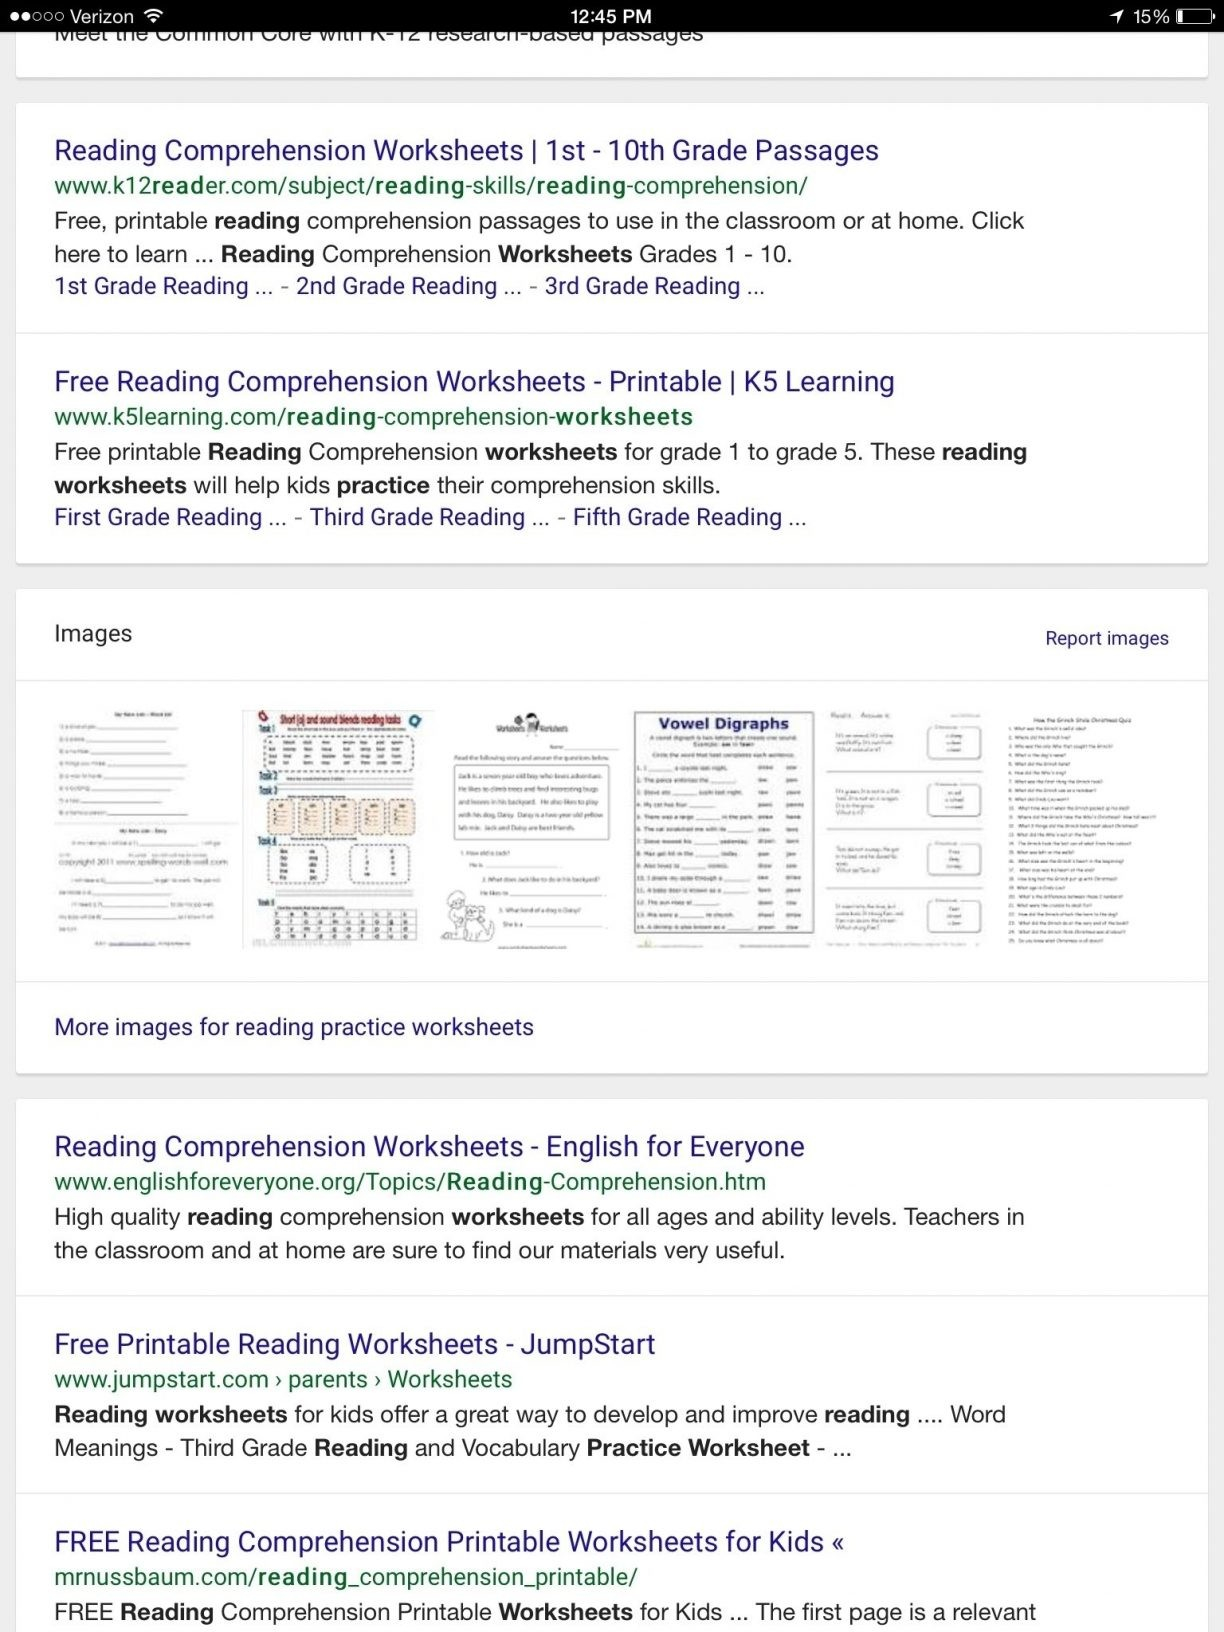 Free Printable Reading Comprehension Worksheets Grade 5 For 1 1224 - Free Printable Comprehension Worksheets For Grade 5